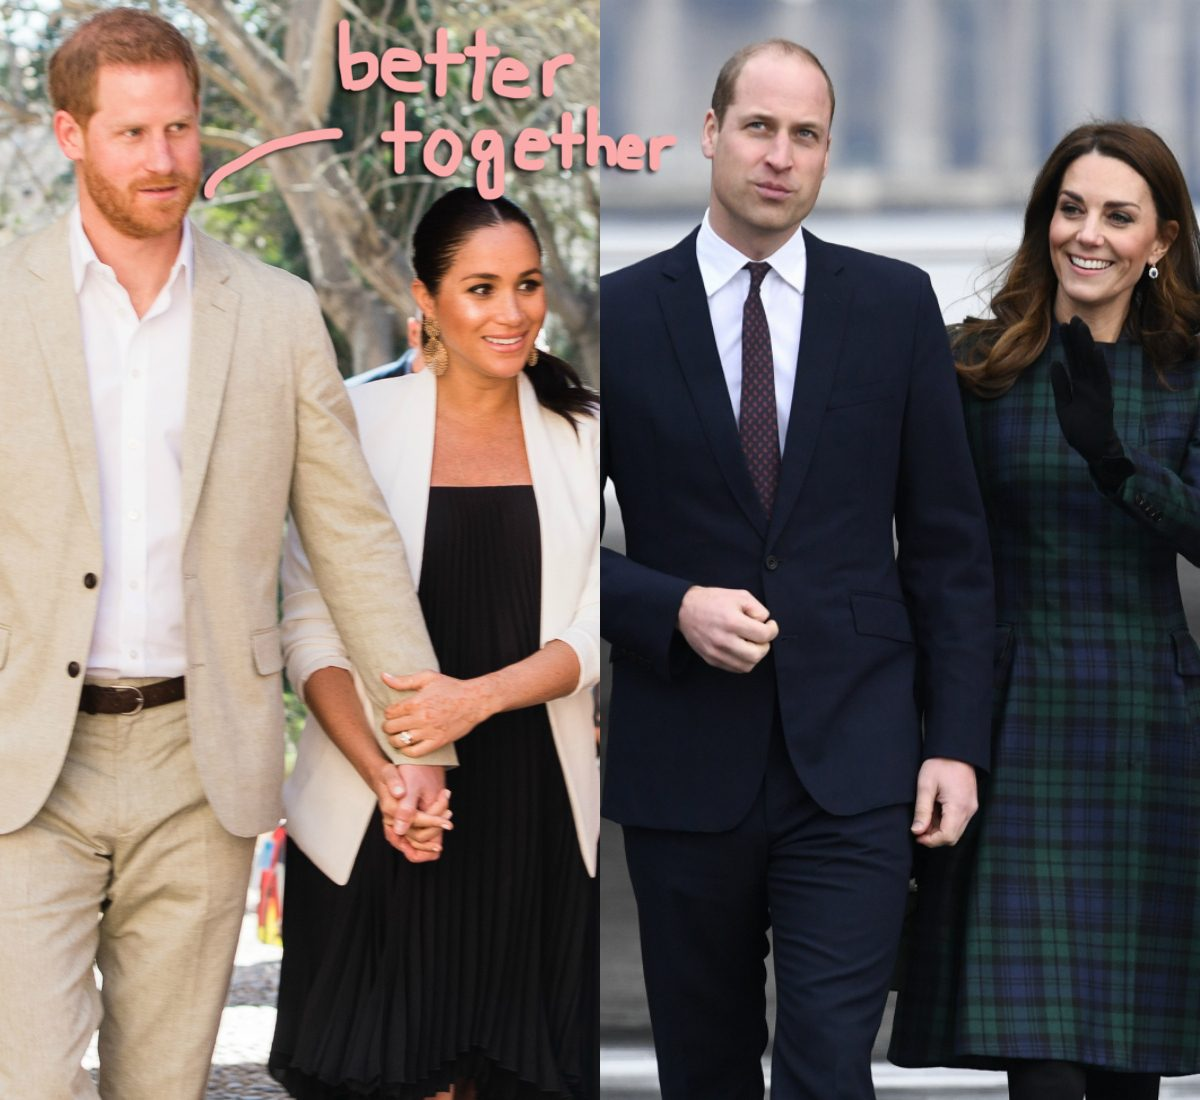 Topic Prince Harry: Mental Health News, Articles, Stories & Trends For Today